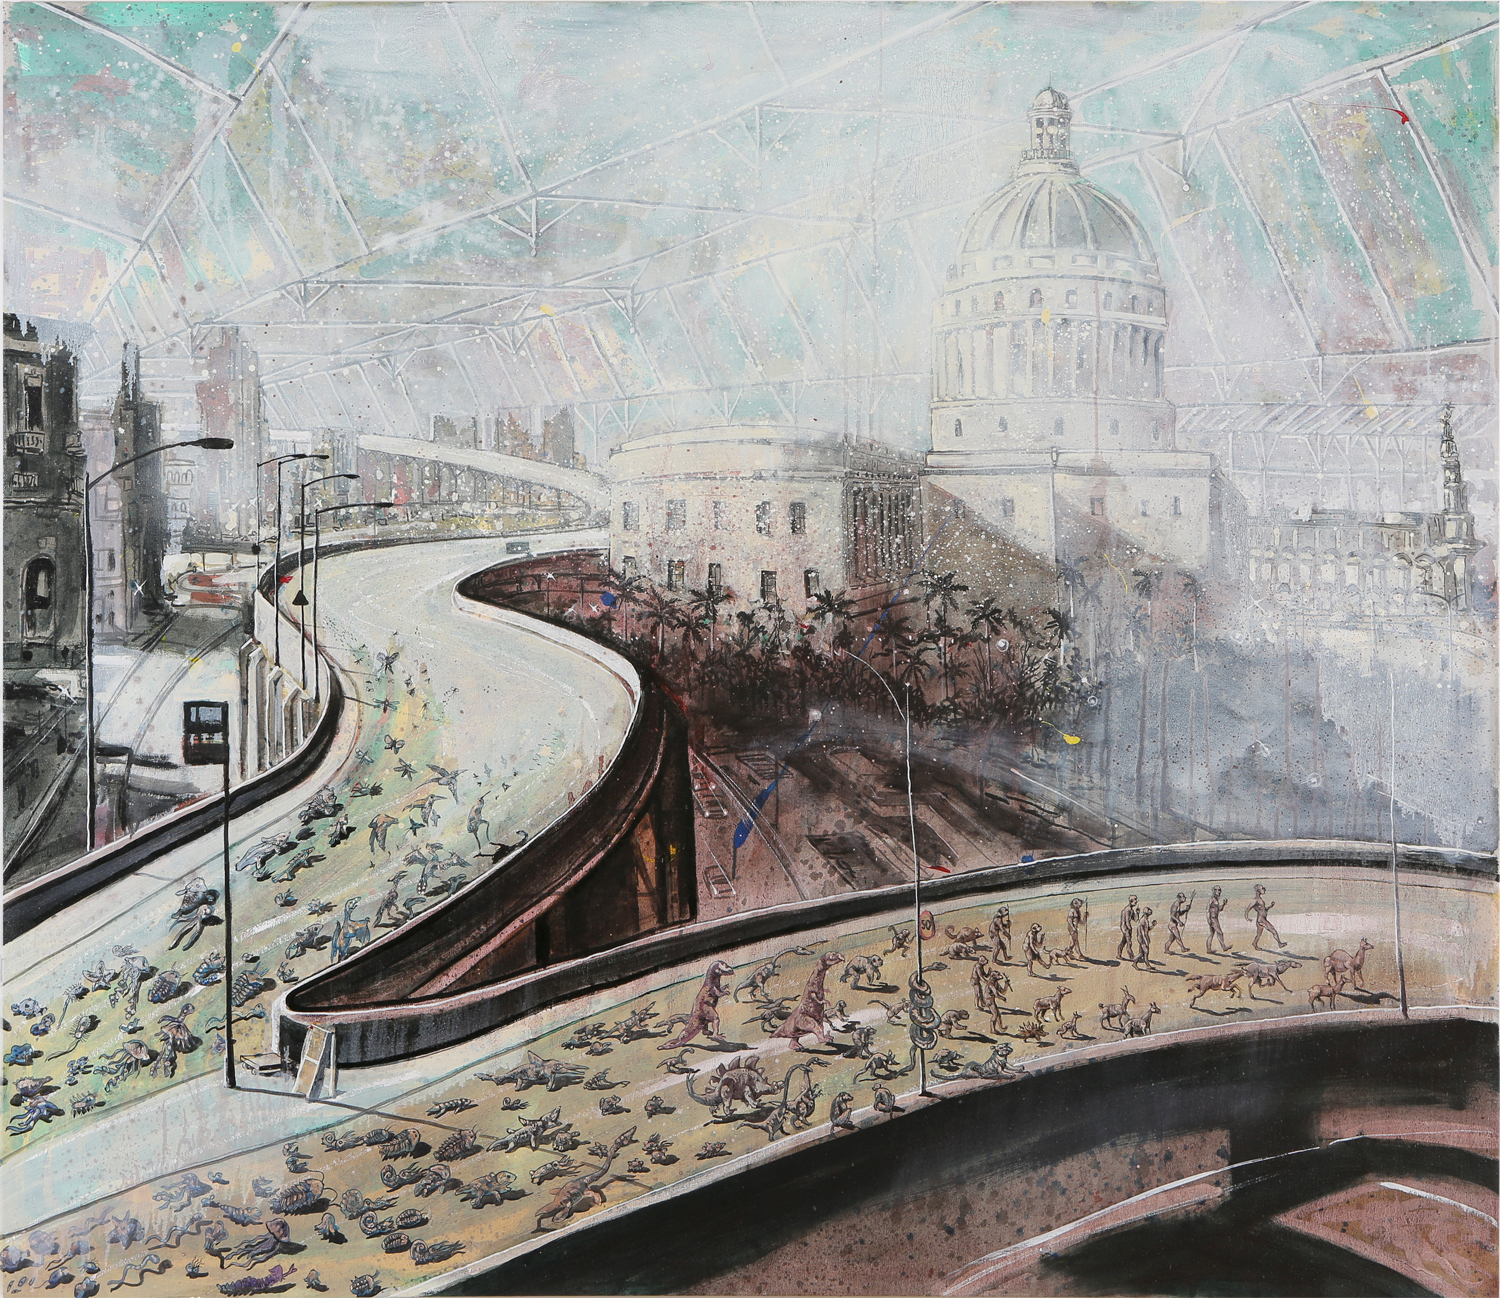 Douglas Pérez,  Retiro/Retreat , 2010. [Image Description: A painting depicts an elevated highway in an urban environment. In the foreground, two lanes diverge and snake outwards from the bottom left of the image. Walking along the road are various creatures, ranging from single-celled organisms and dinosaurs, to humans and dogs. In the background is a city, with a large, domed white building at the center surrounded by palm trees.]